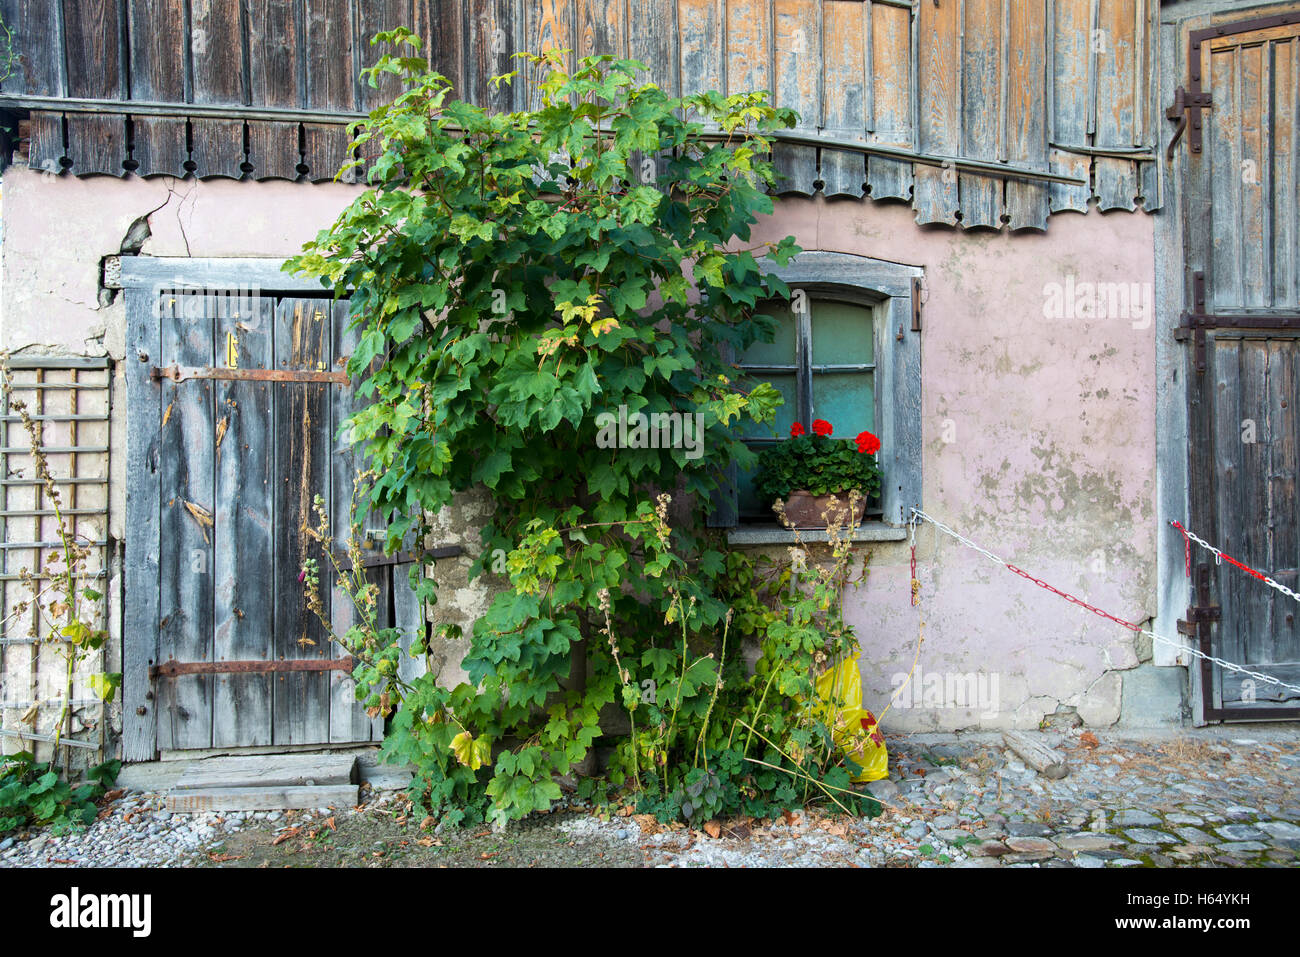 Tree growing in front of an old barn, Reichenau, Baden-Wuerttemberg,Germany - Stock Image